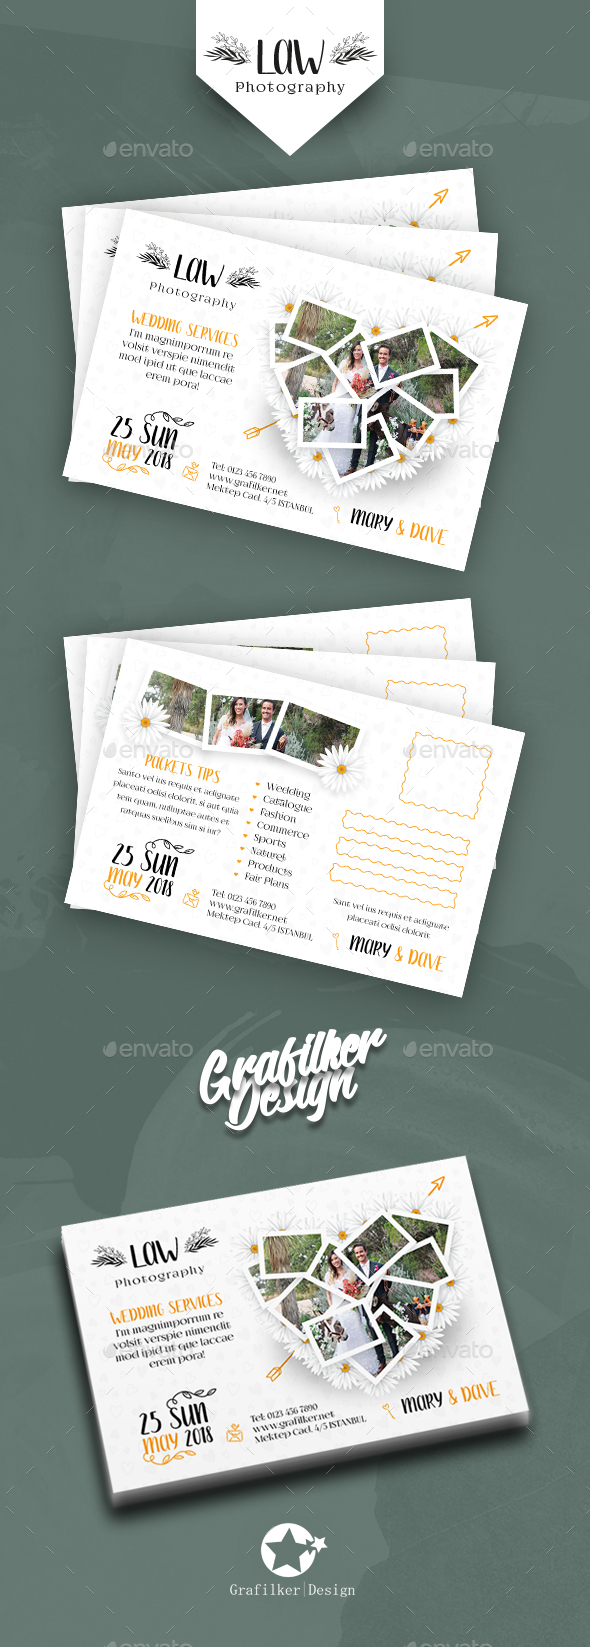 Wedding Postcard Templates - Cards & Invites Print Templates